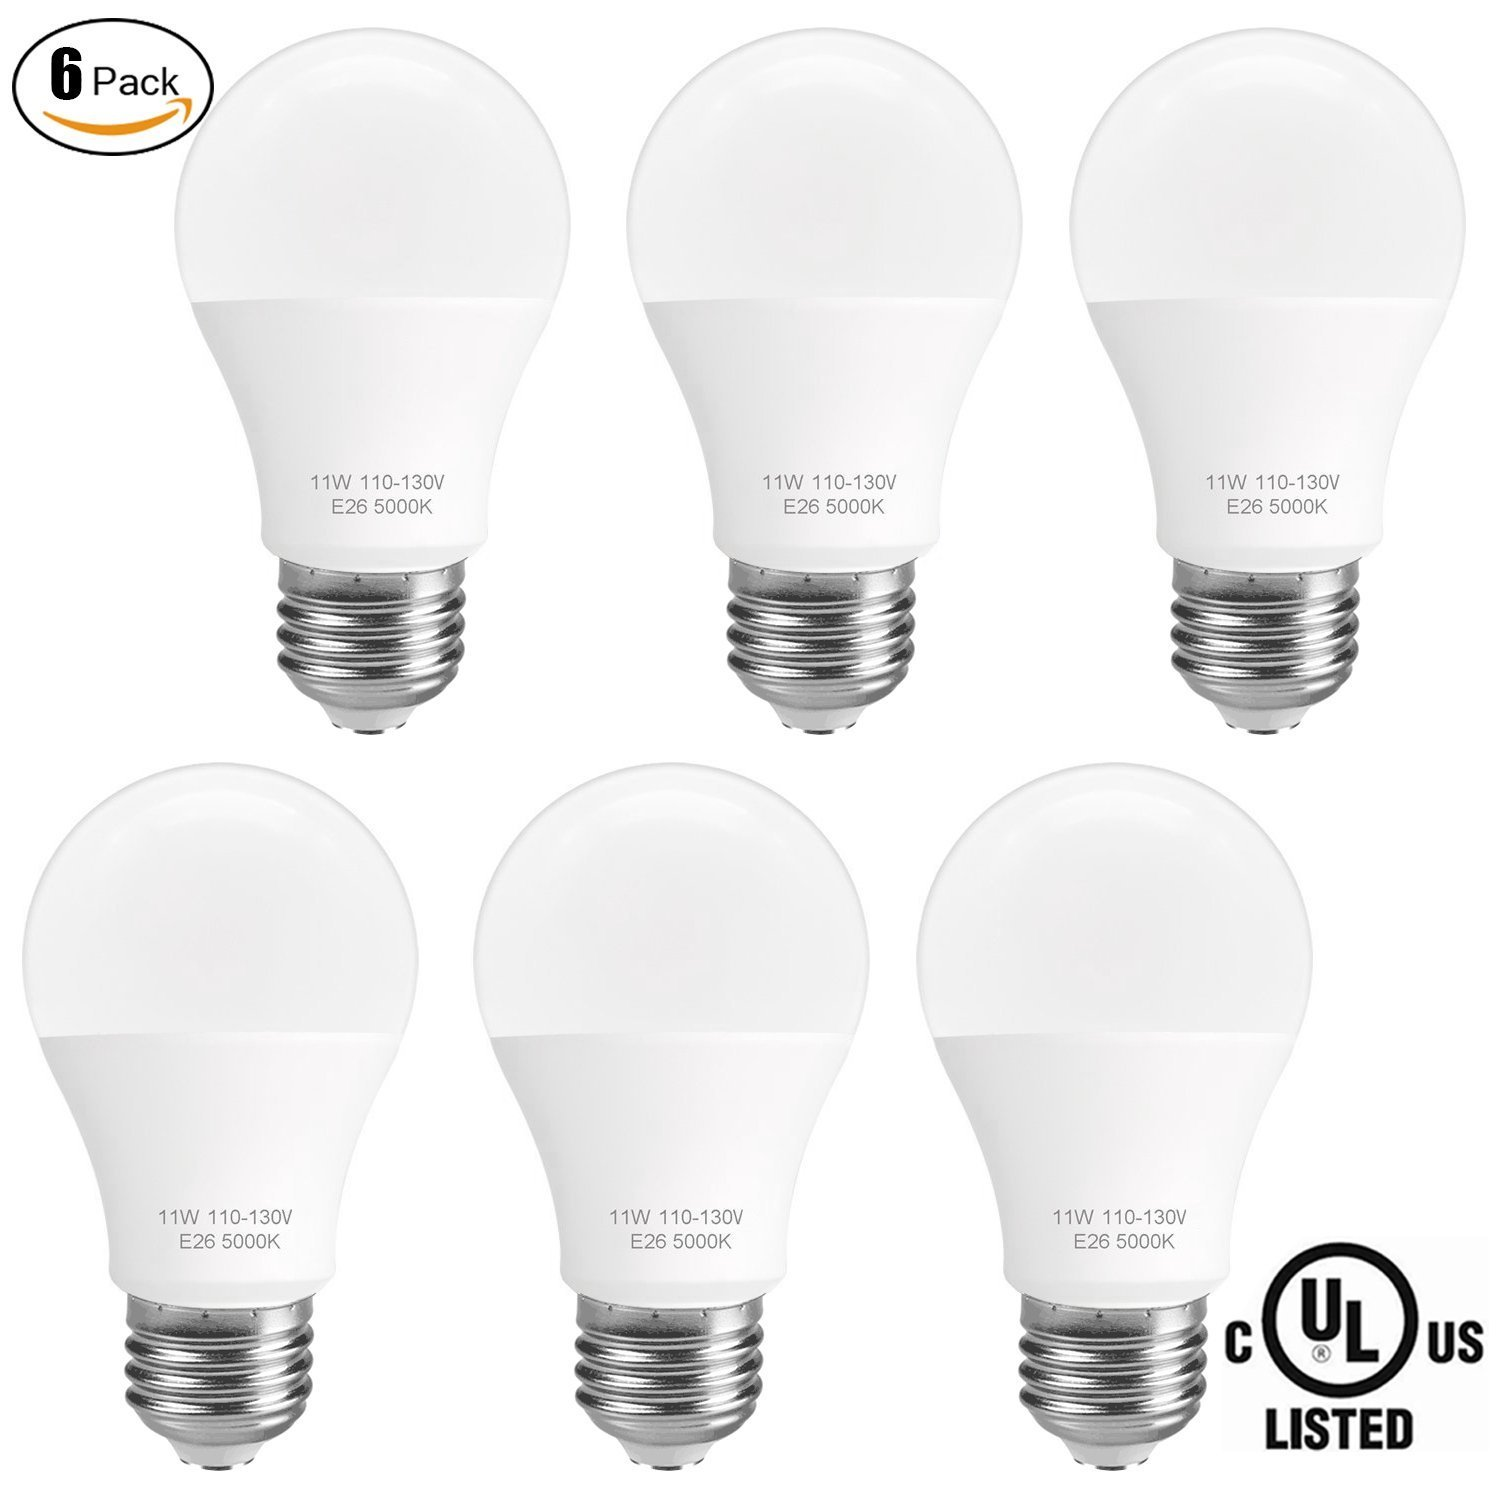 equivalent standard light led watts lighting daylight bulb shop medium tenergy base product rakuten